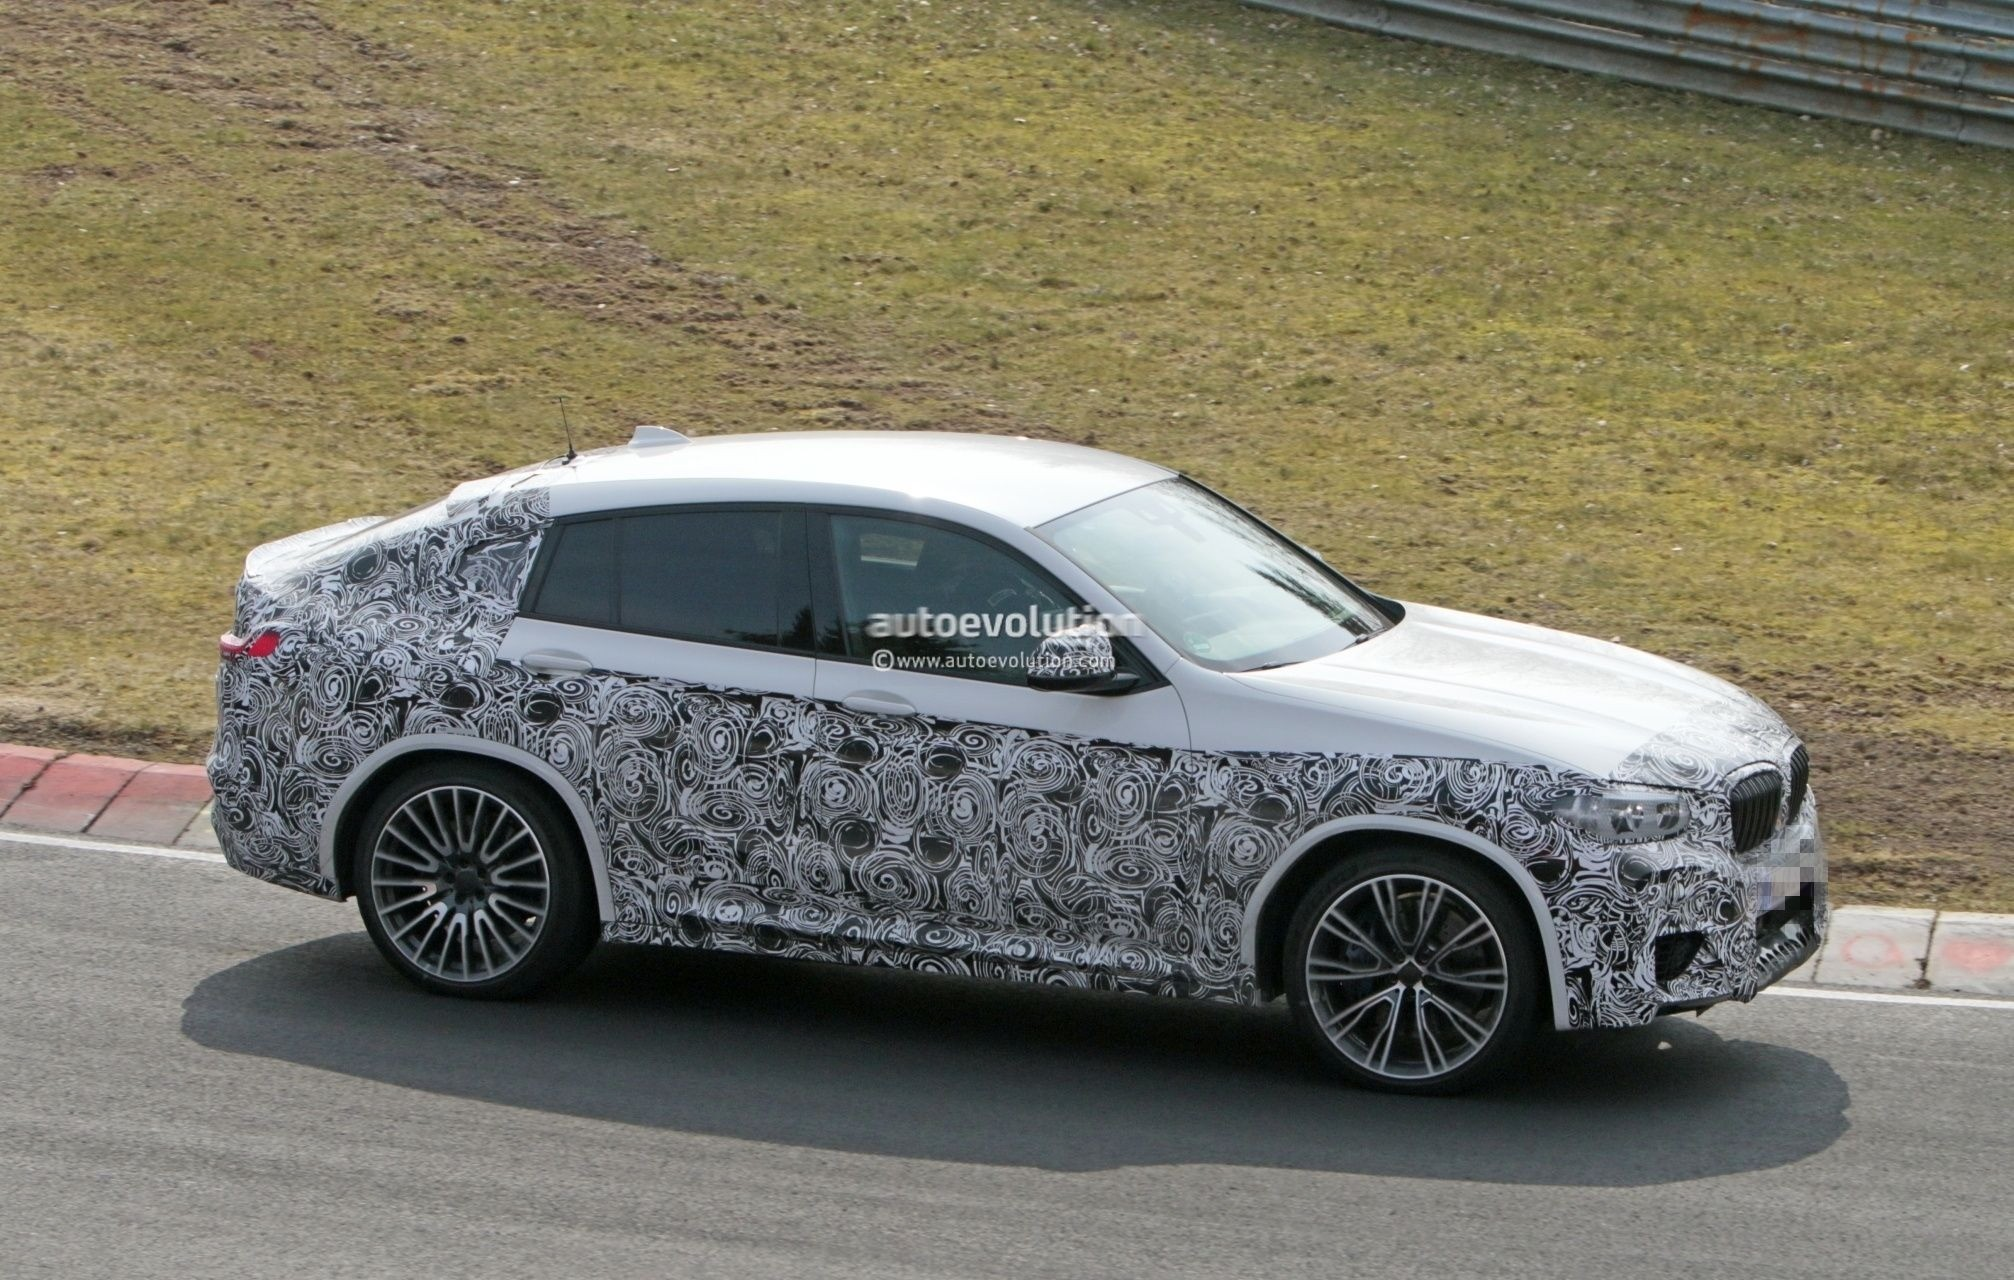 2020 Bmw X4 M Photographed Without Camouflage In